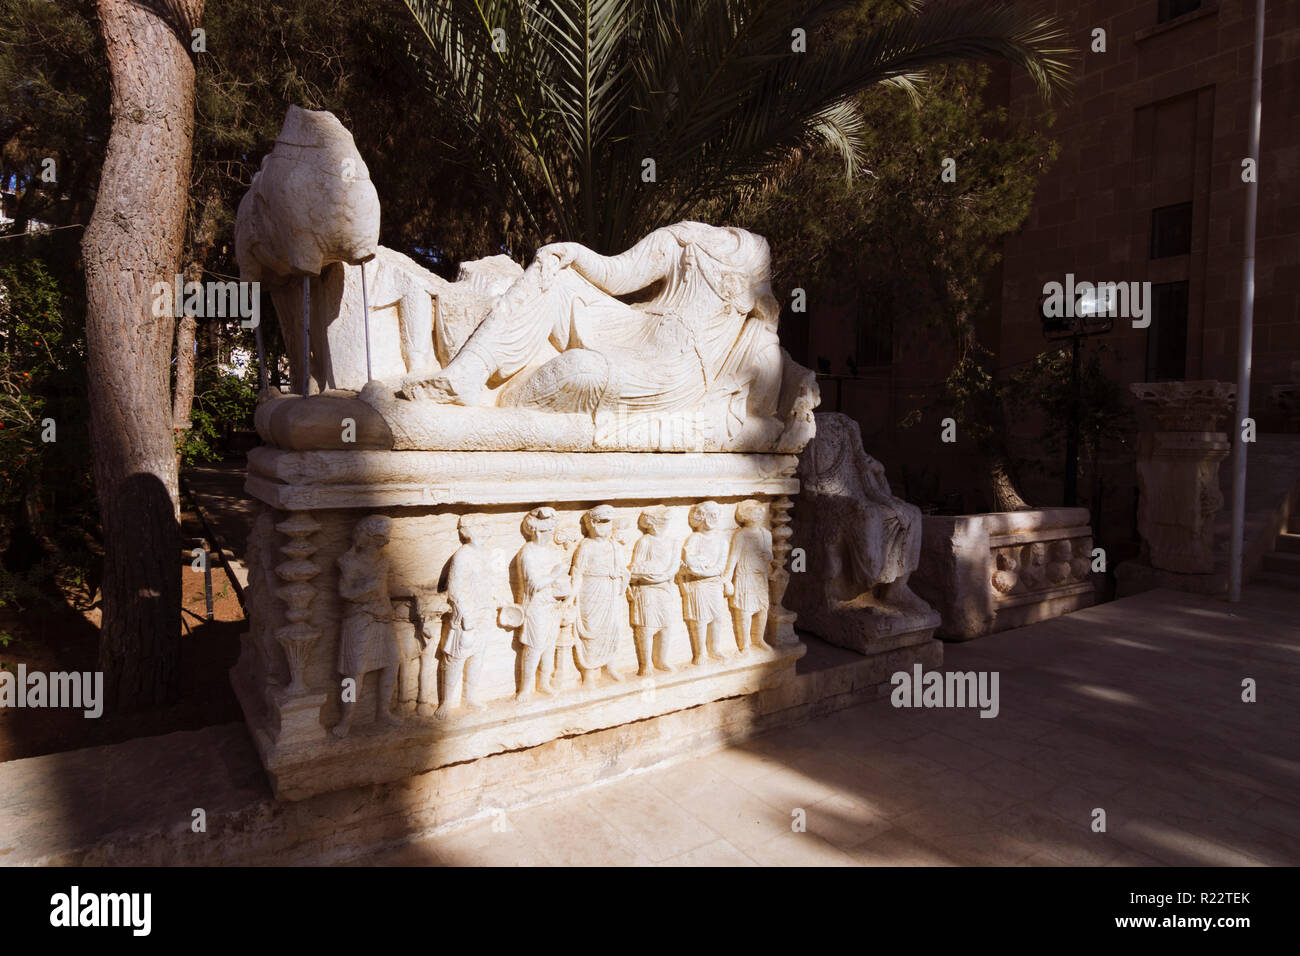 Palmyra, Homs Governorate, Syria - May 27th, 2009 : 3rd century sarcophagus at the entrance of the Archaeological museum of Palmyra. - Stock Image